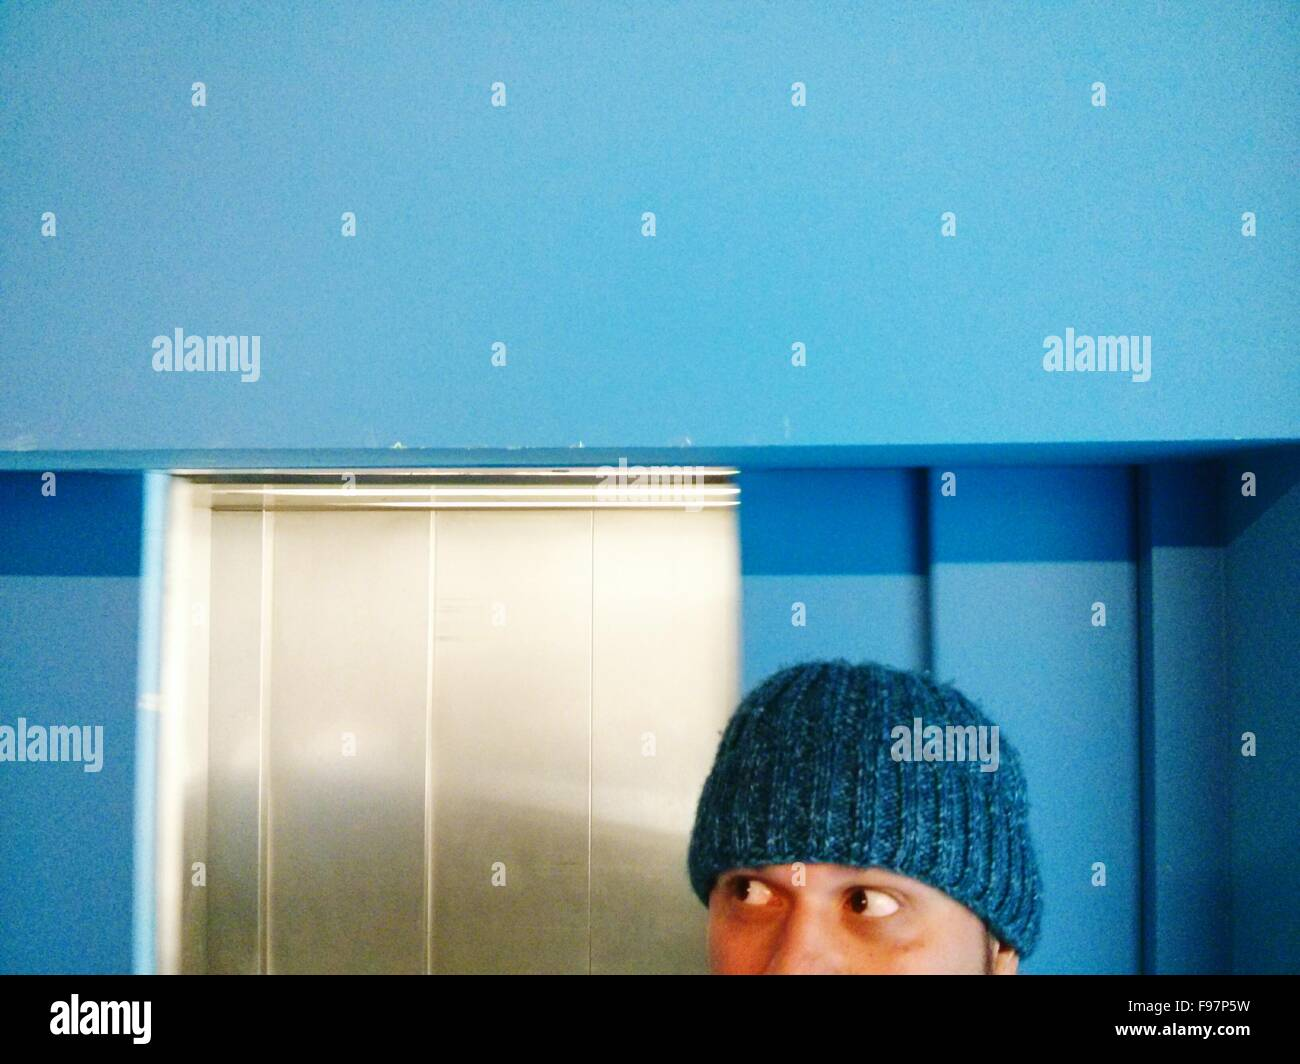 High Section View Of Man Wearing Knit Hat - Stock Image